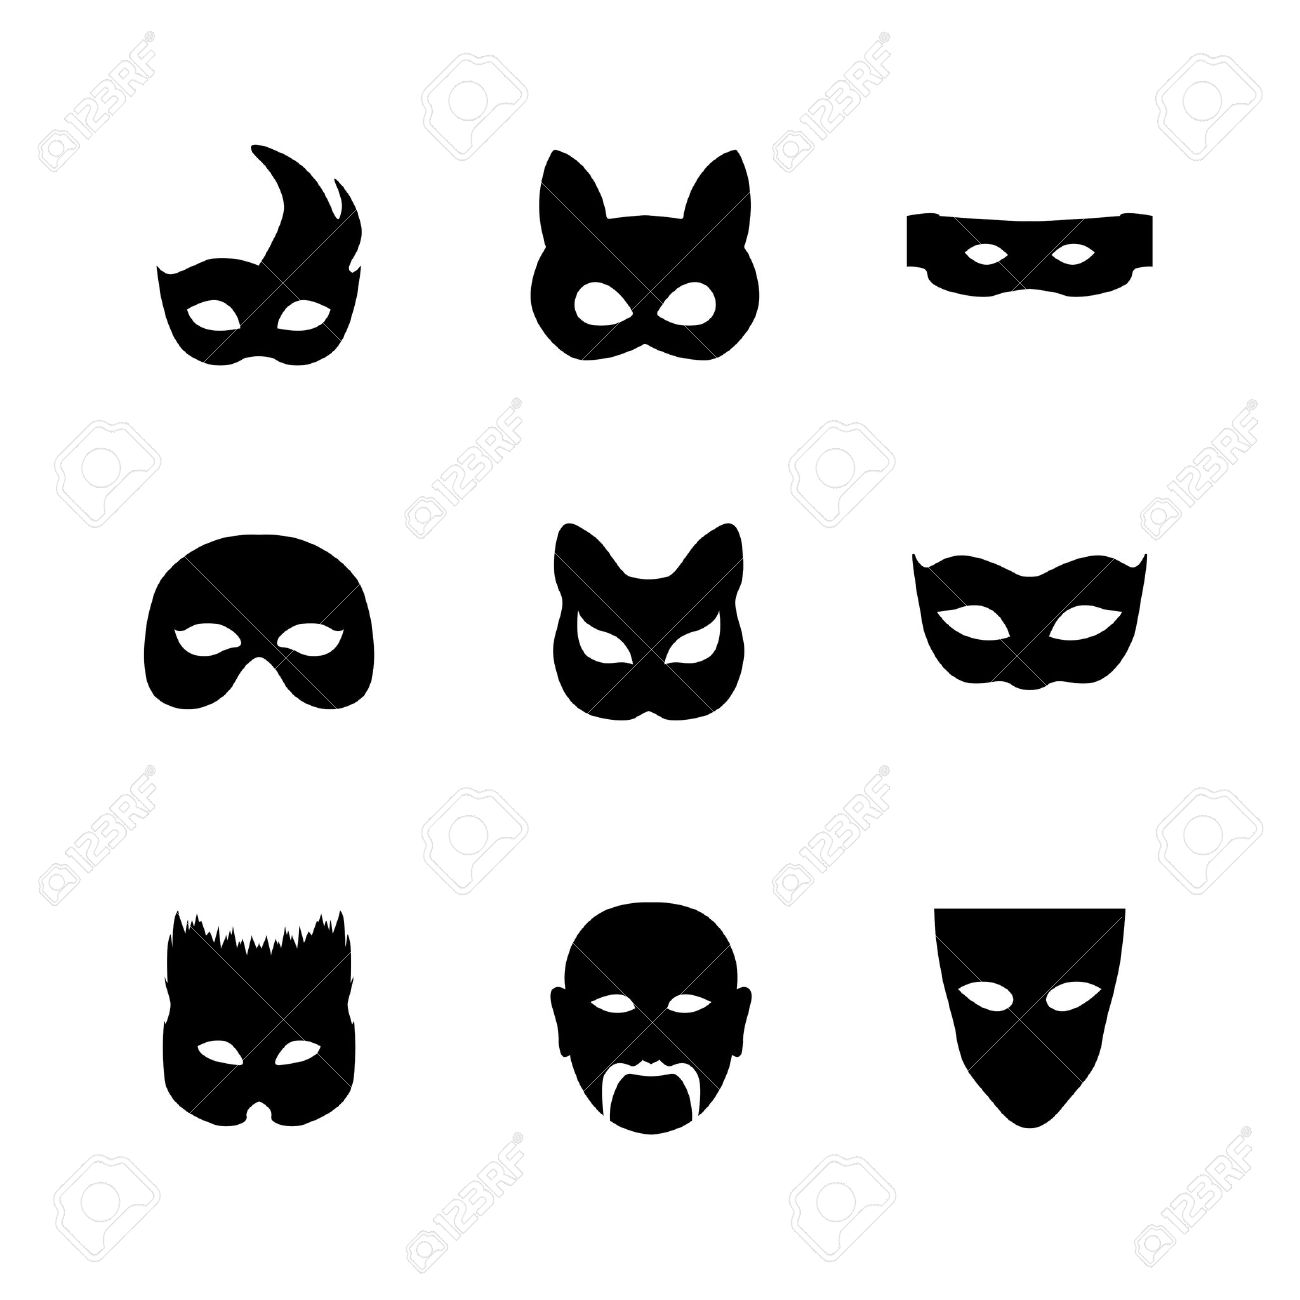 98,565 Mask Stock Vector Illustration And Royalty Free Mask Clipart.